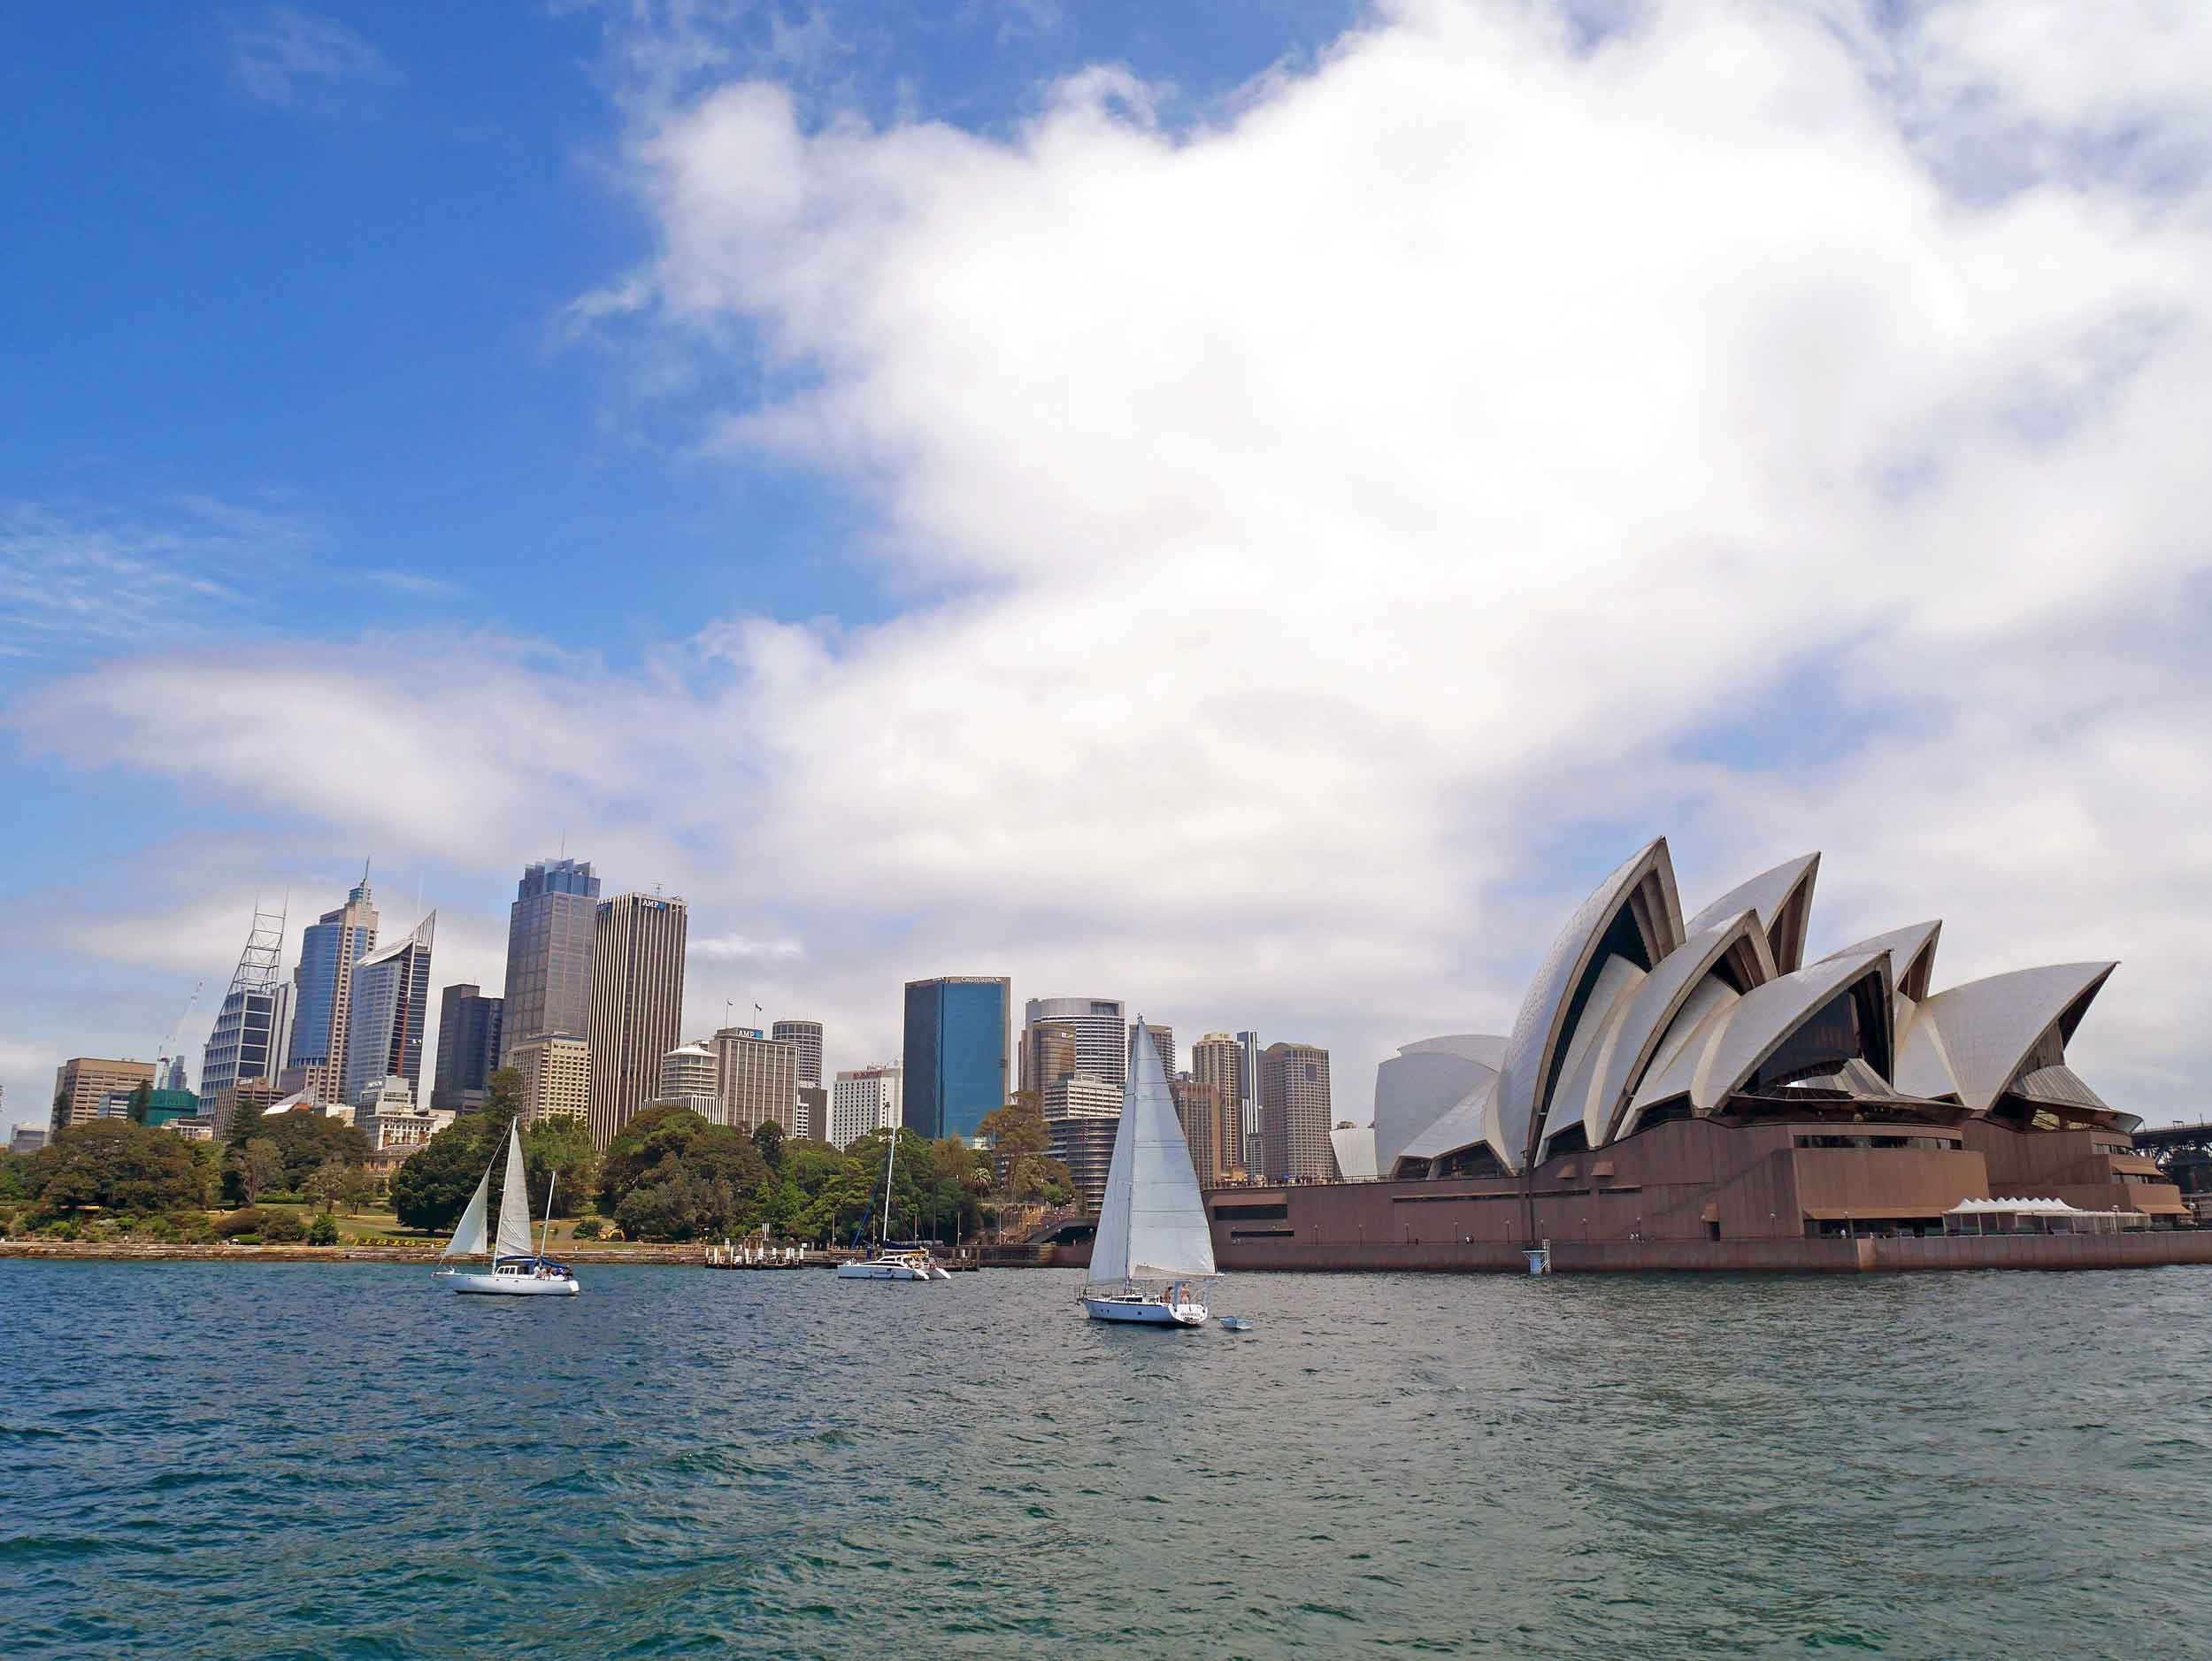 A ferry ride through Sydney Harbour is a must-do (Feb 4).